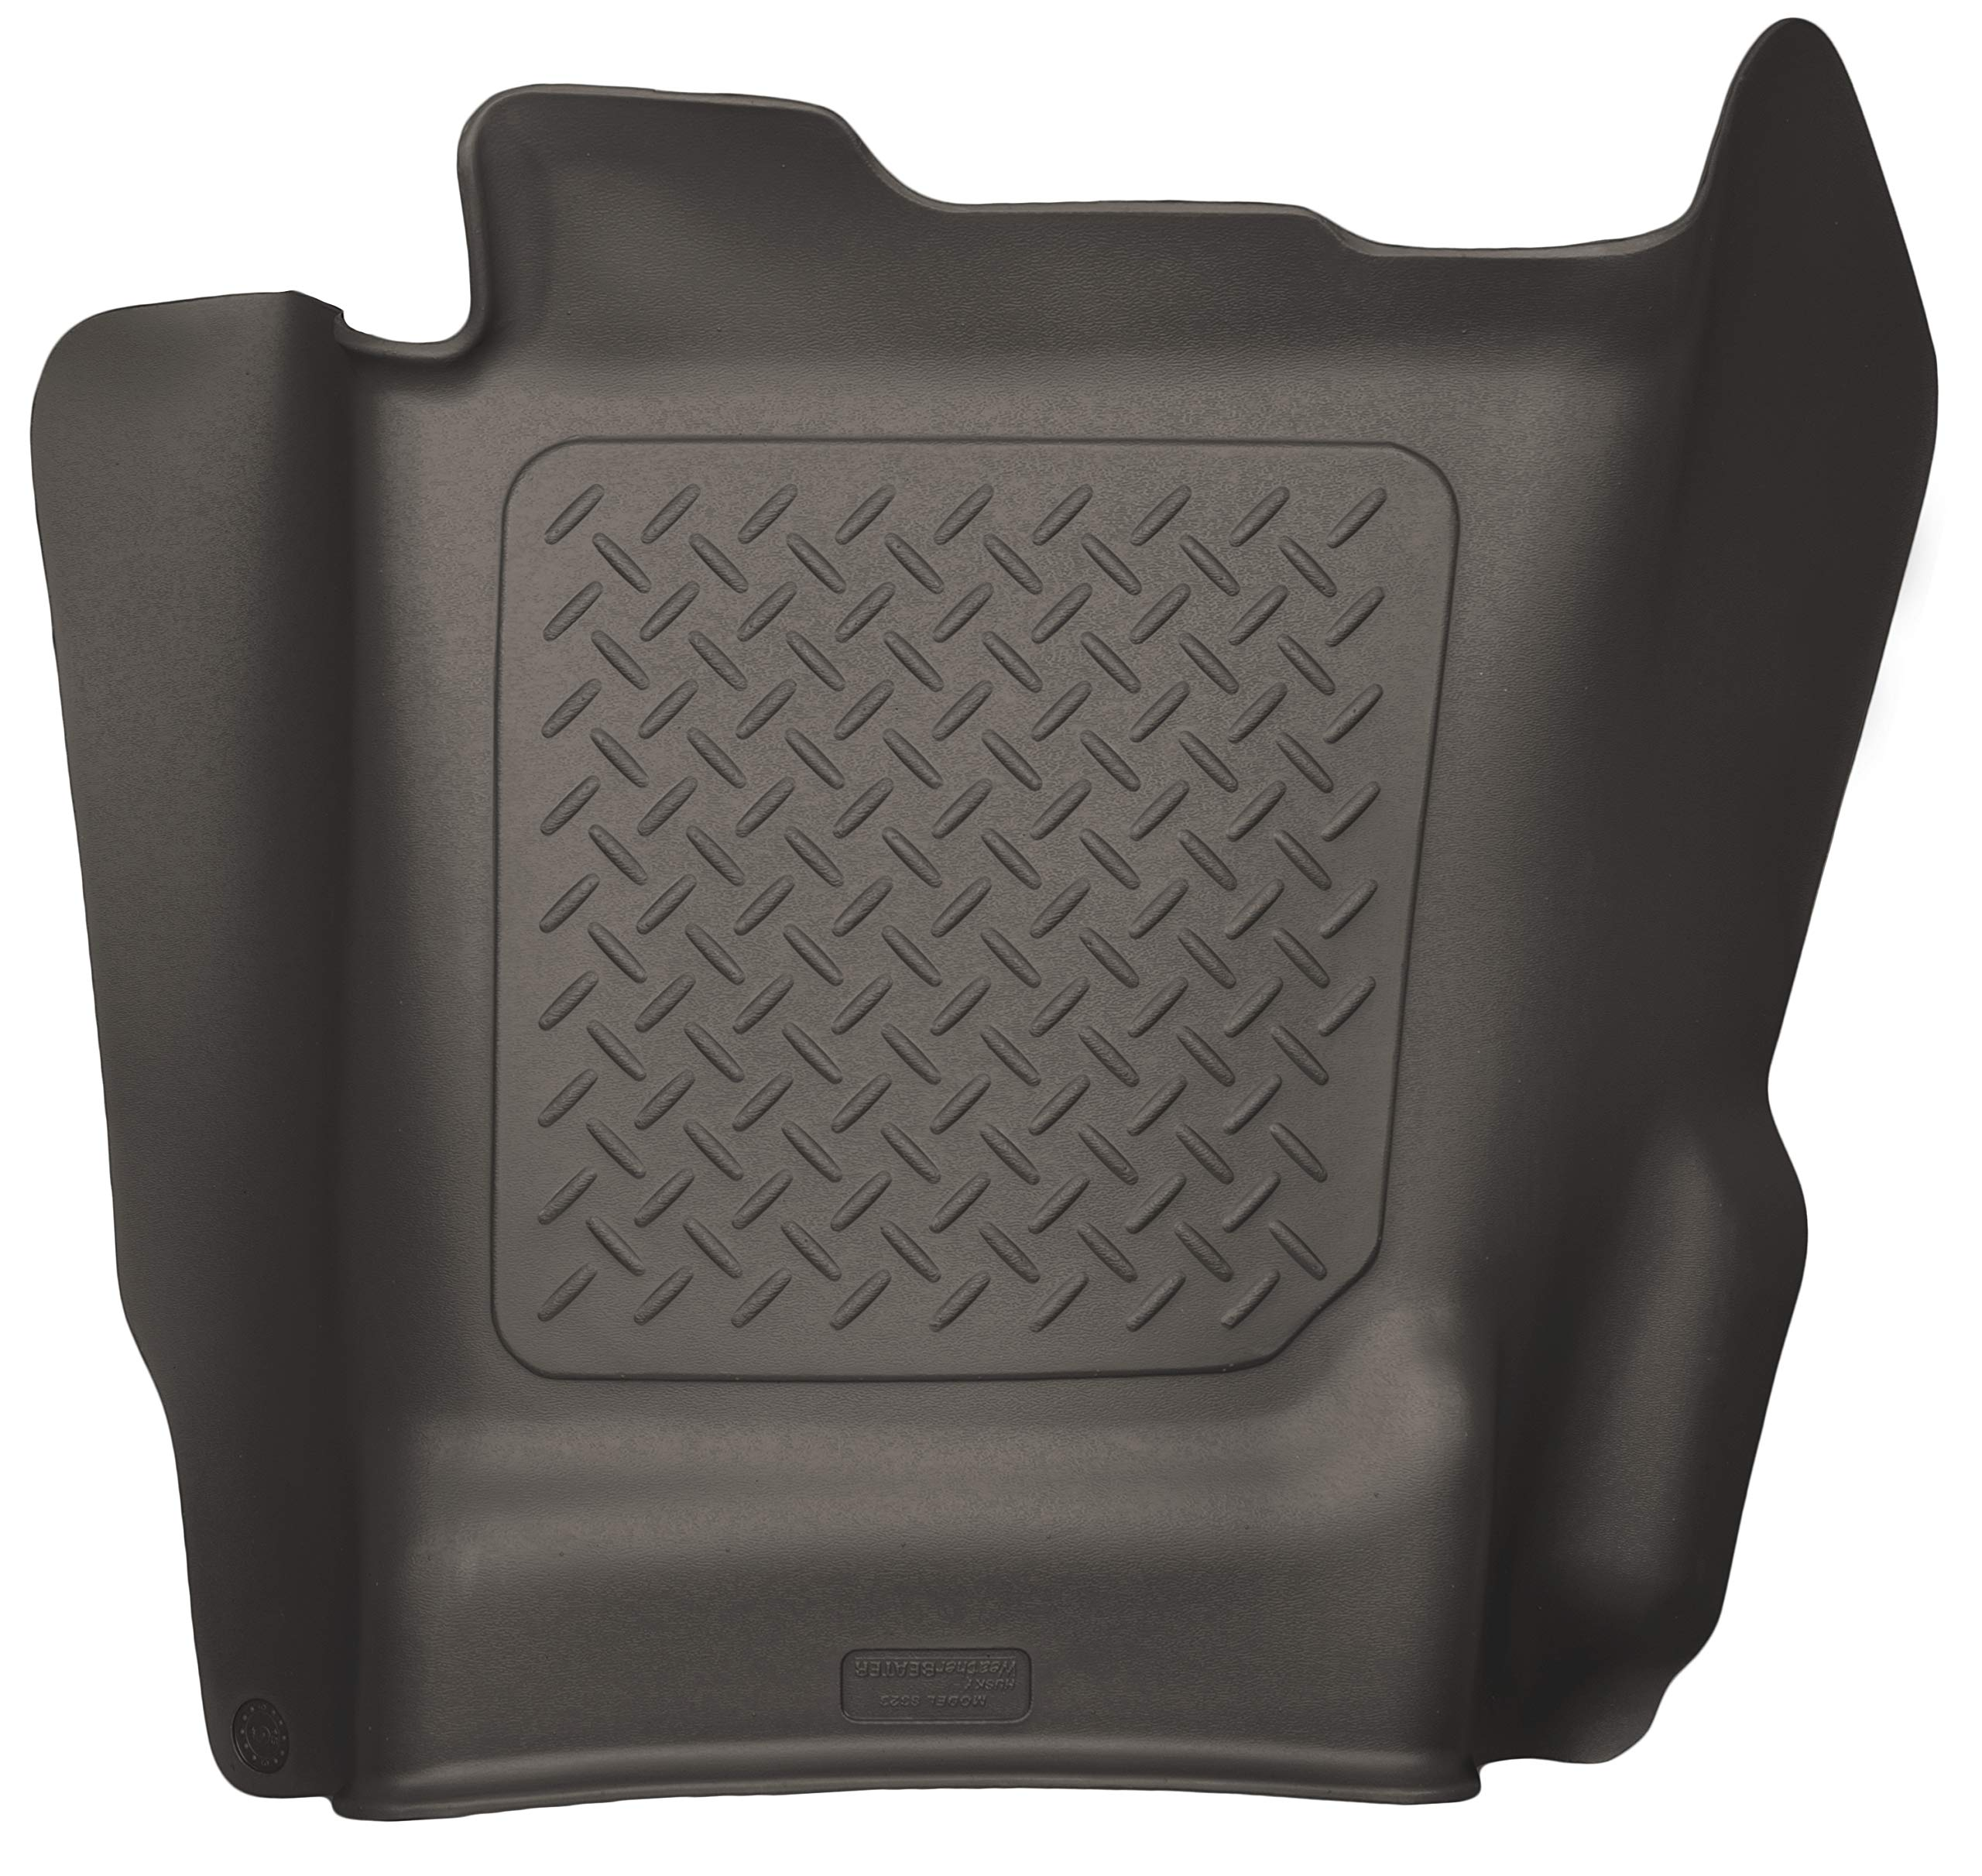 Husky Liners 53150 Cocoa Center Hump Floor Liner Fits 14-18, 2019 Legacy/Sierra 1500, 15-19 Chevrolet Silverado 2500/3500